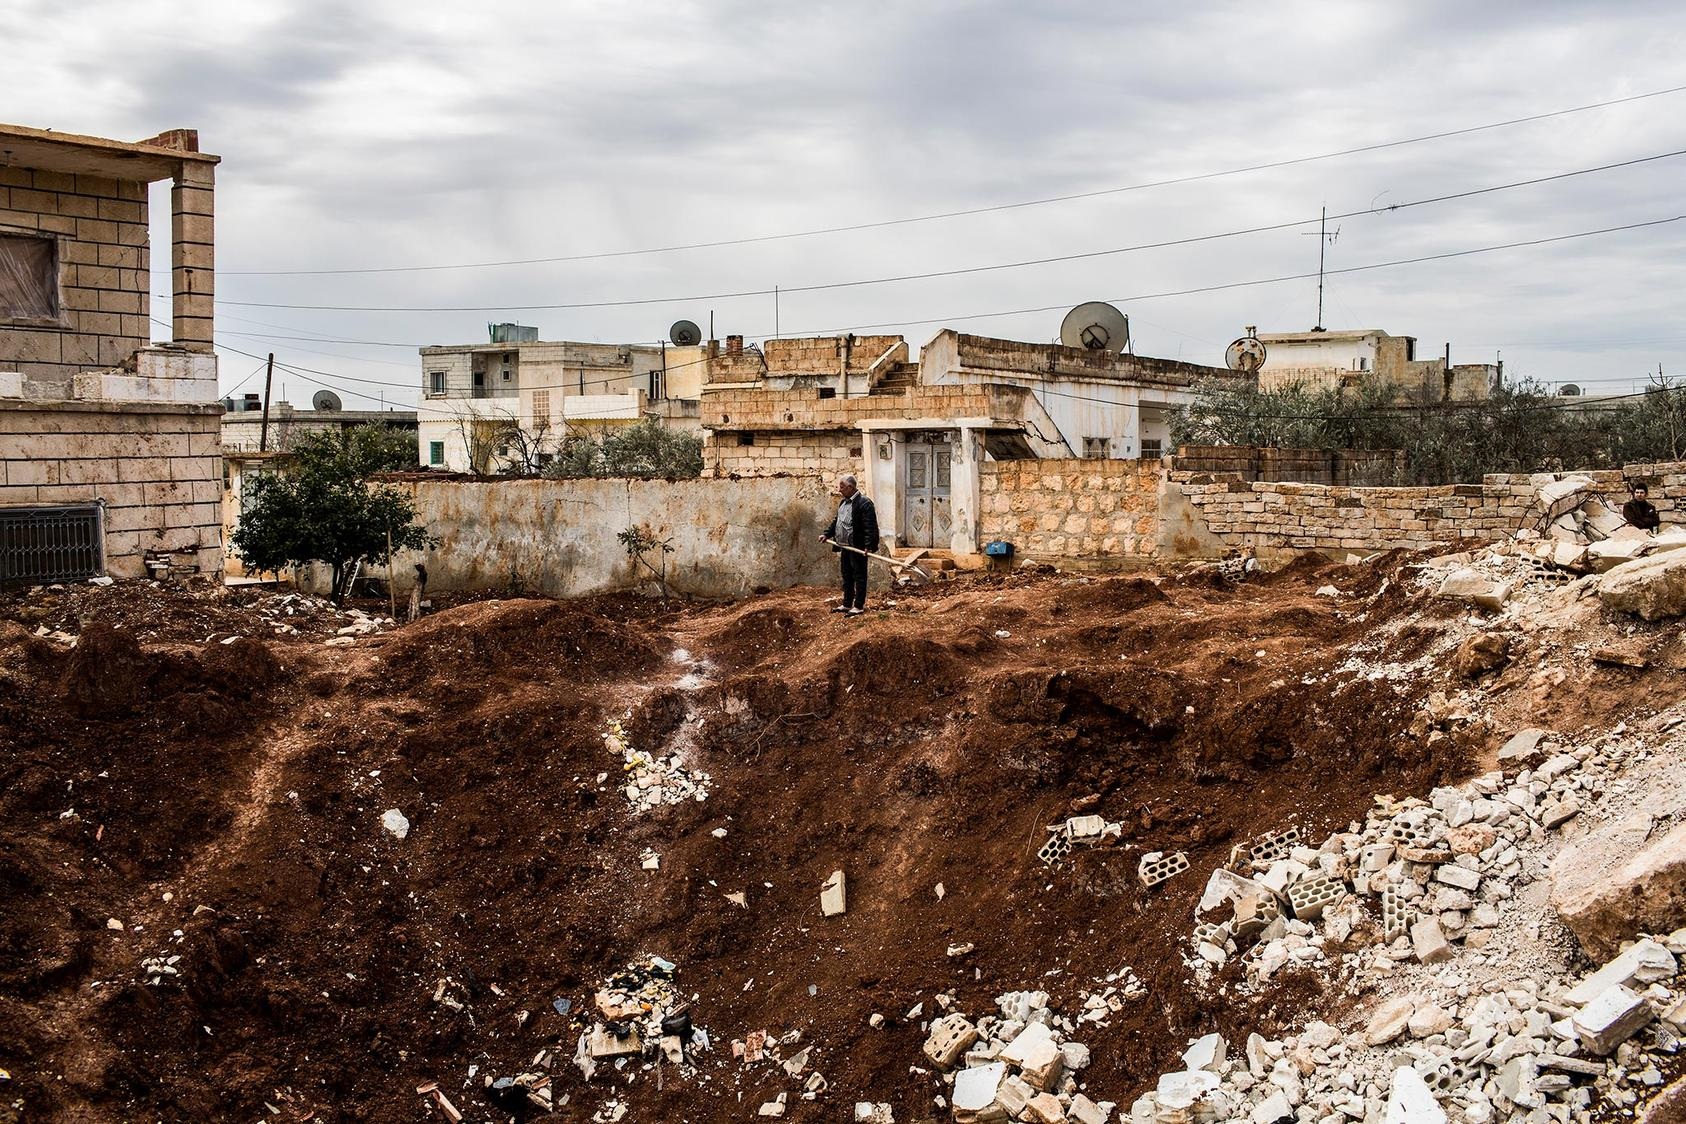 A man holding a shovel surveys a crater left by what locals said was a Scud missile strike